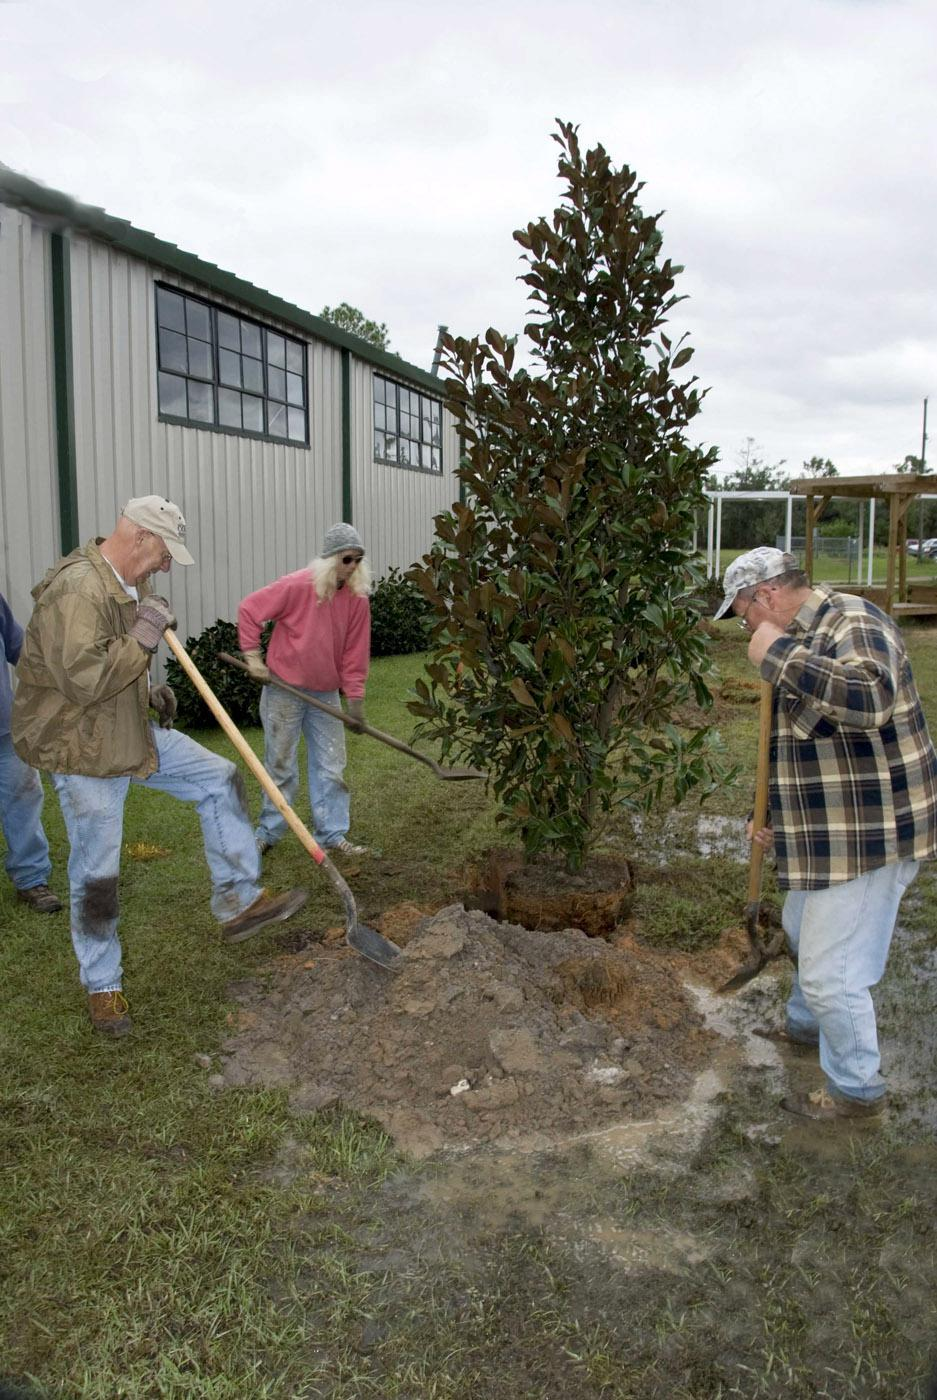 Lincoln County Master Gardener Homer Richardson, Karen Peresich and Steve Edge of Gautier plant trees at Pineville Elementary on Menge Road in Pass Christian as part of the Mississippi Master Gardeners Operation Rejuvenation on the Gulf Coast.  (Photo By Marco Nicovich)